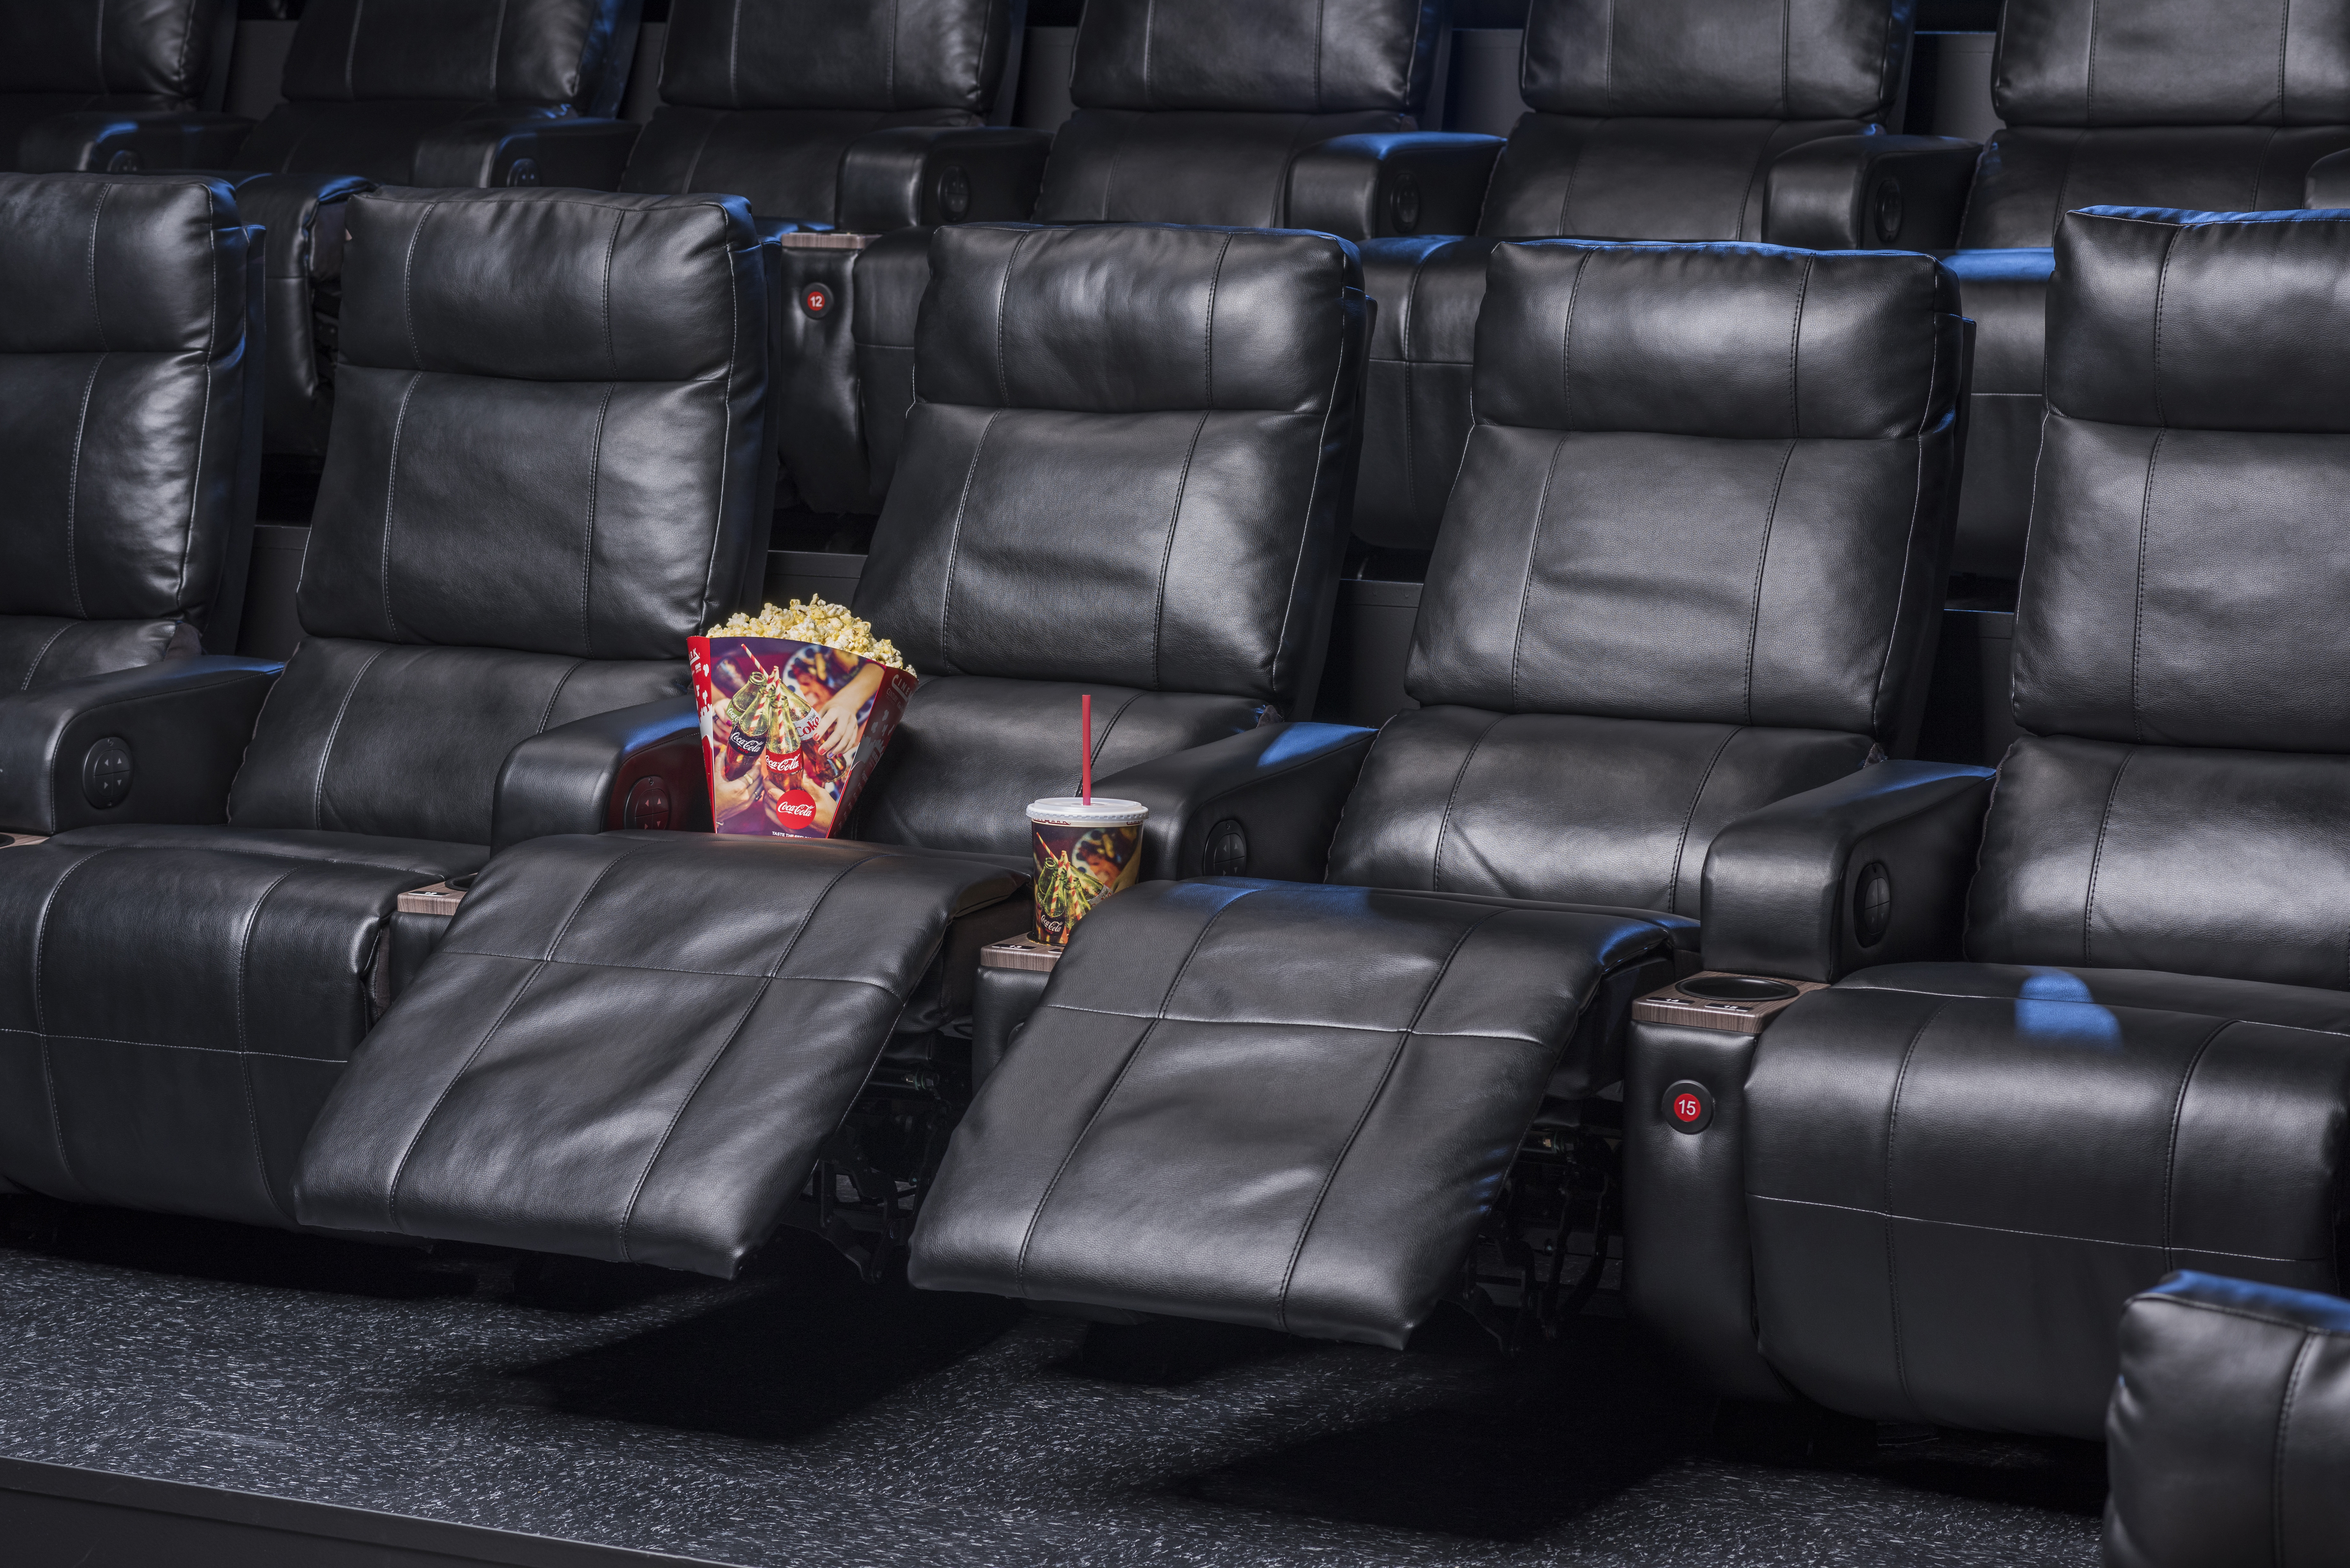 Cinemark Announces Remodel Of 12 Screen Theatre In Lufkin, Texas With Luxury  Lounger Recliners | Business Wire